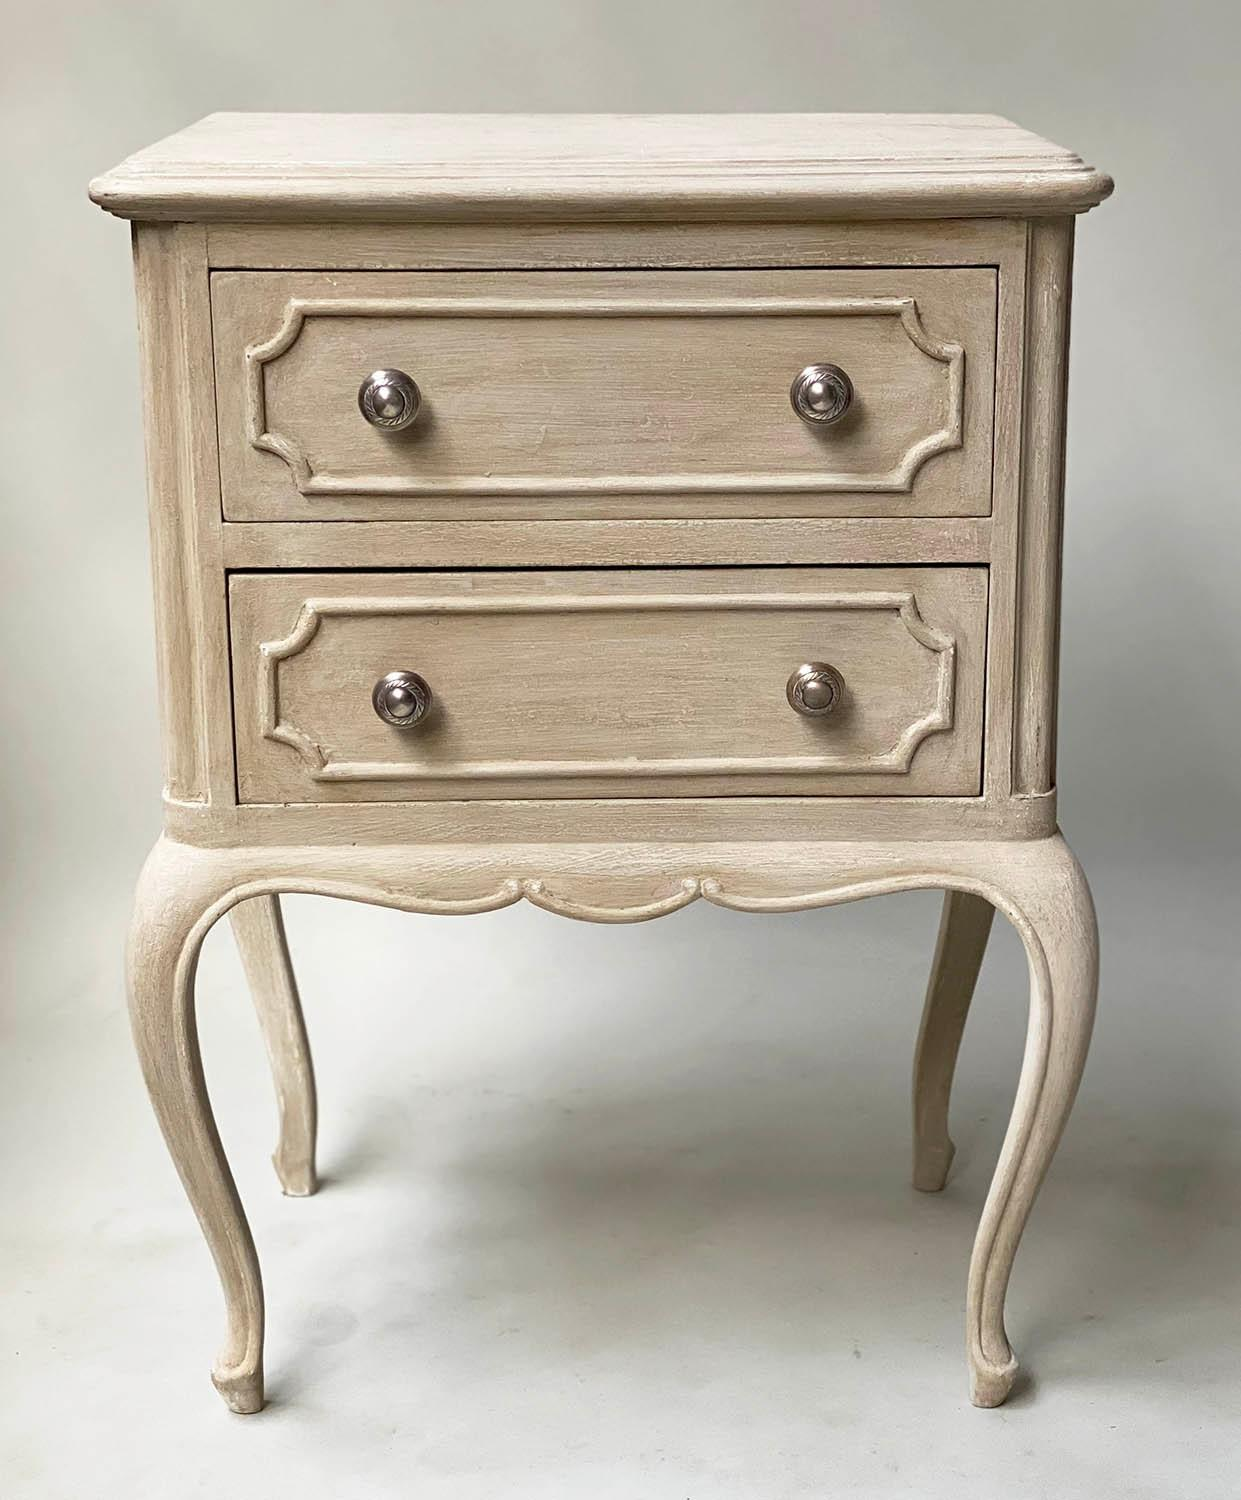 BEDSIDE CHESTS, a pair, French Louis XV design grey painted each with two drawers, 48cm x 36cm x - Image 3 of 5